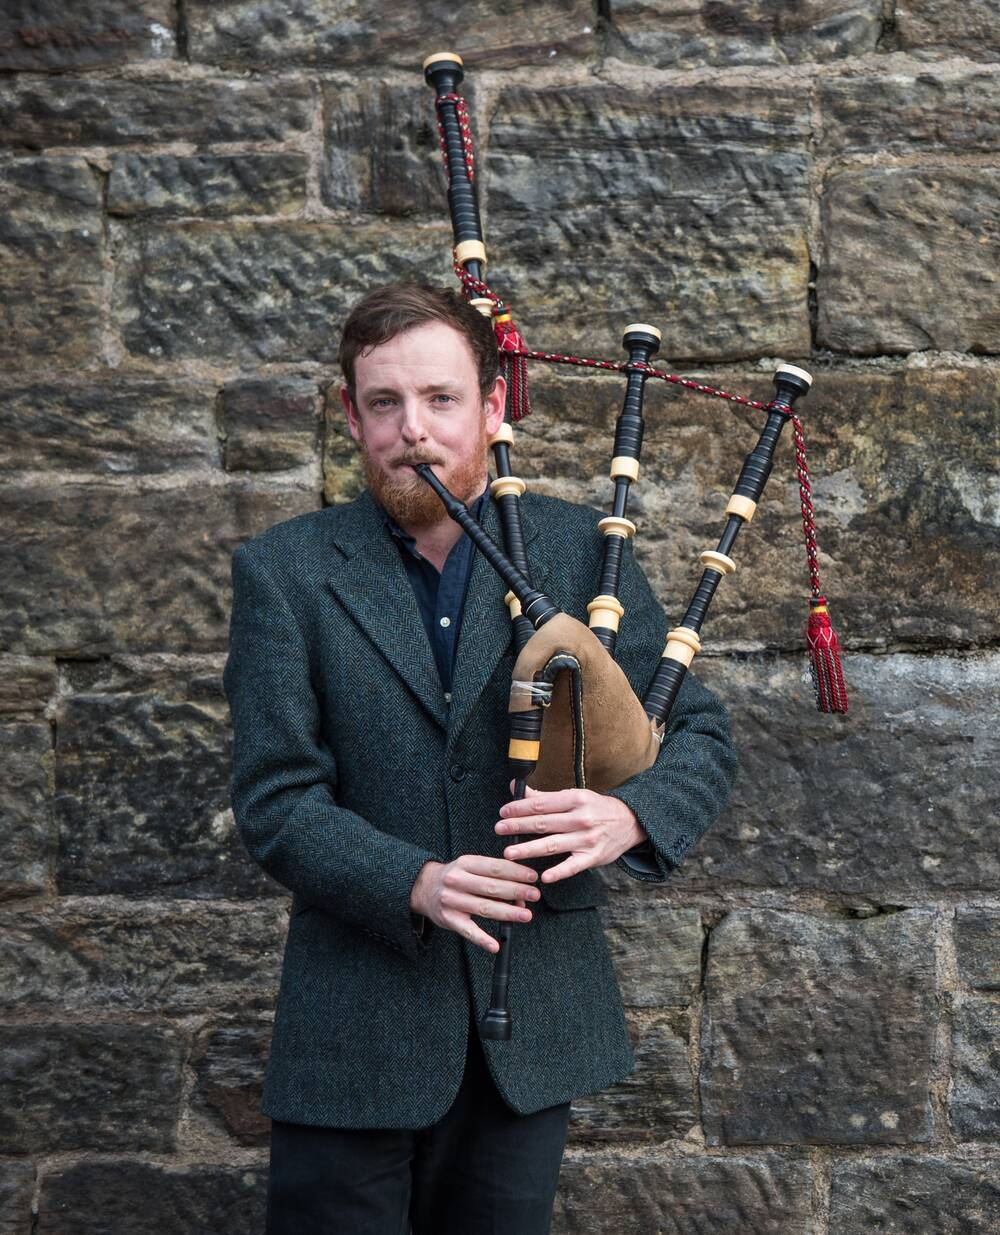 A man wearing a tweed jacket plays the bagpipes, standing in front of a stone wall.